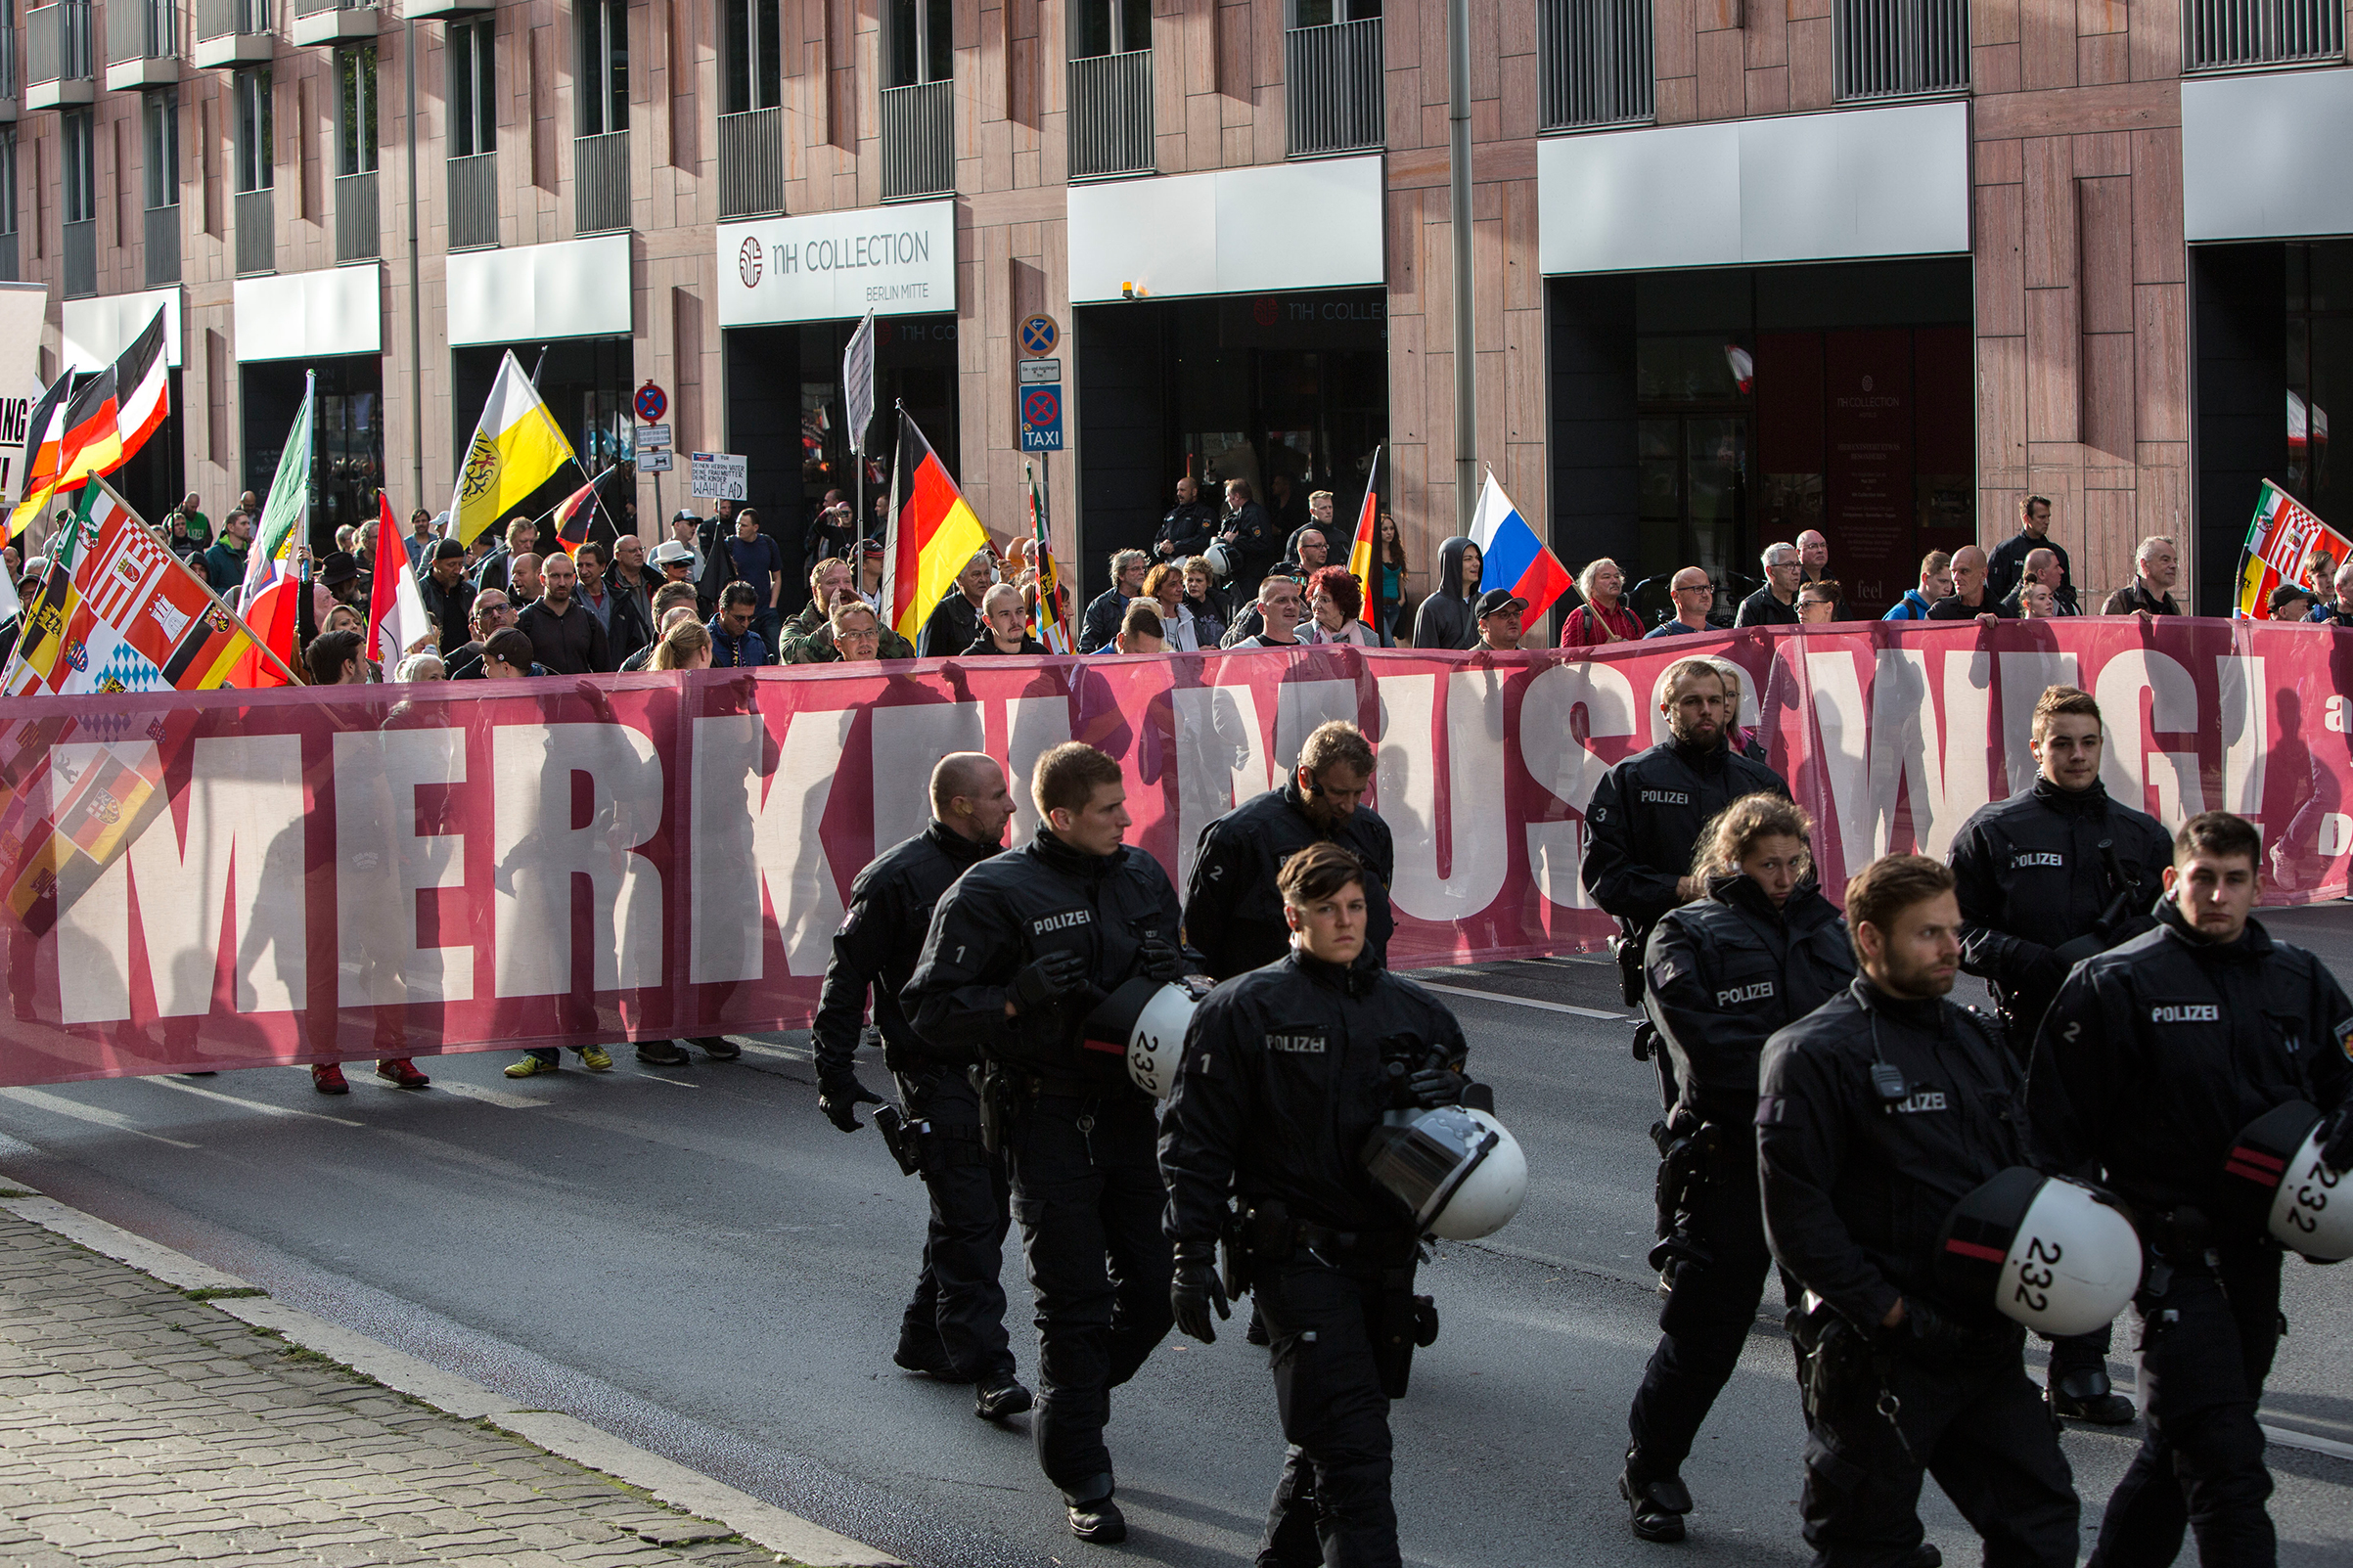 About 400 participants marched through Berlin's Mitte district as part of the seventh (and last) demonstration under the title  Merkel Muss Weg  (Merkel must go), on Sept. 9, 2017.